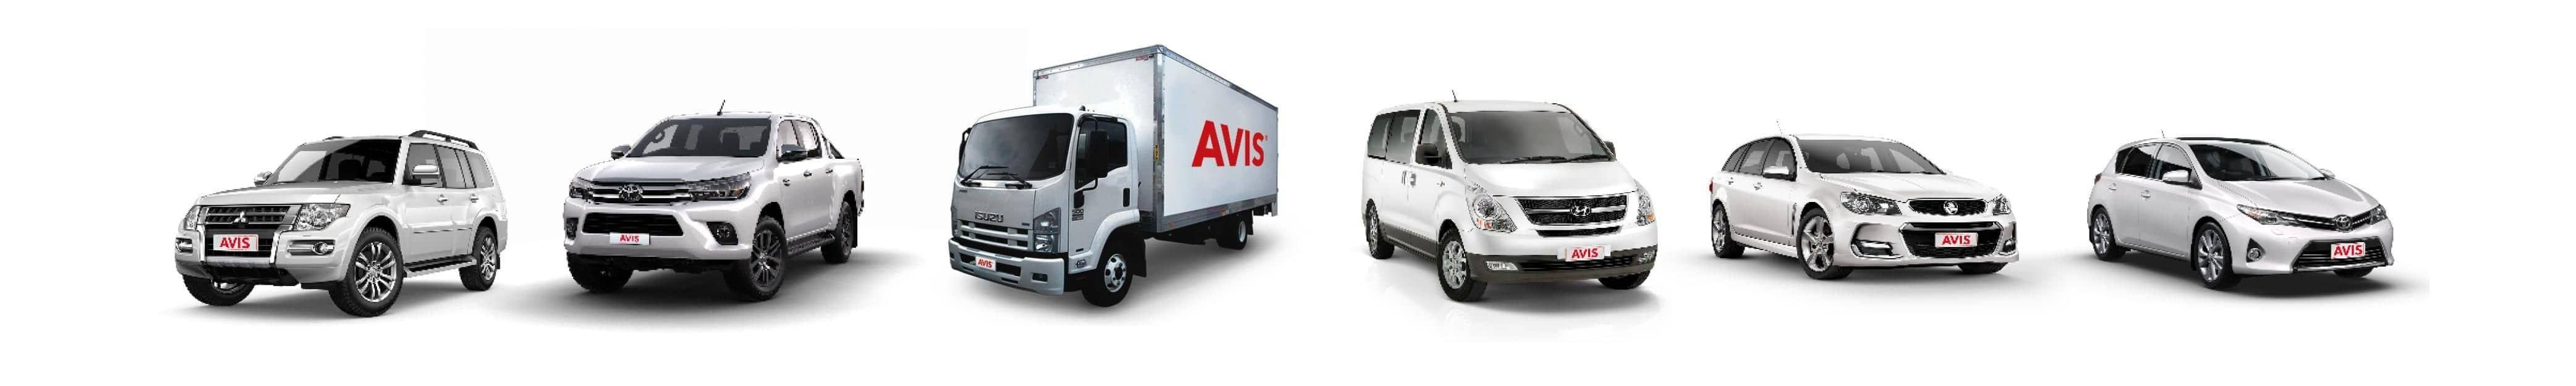 avis-au-businesssolutions-truck2